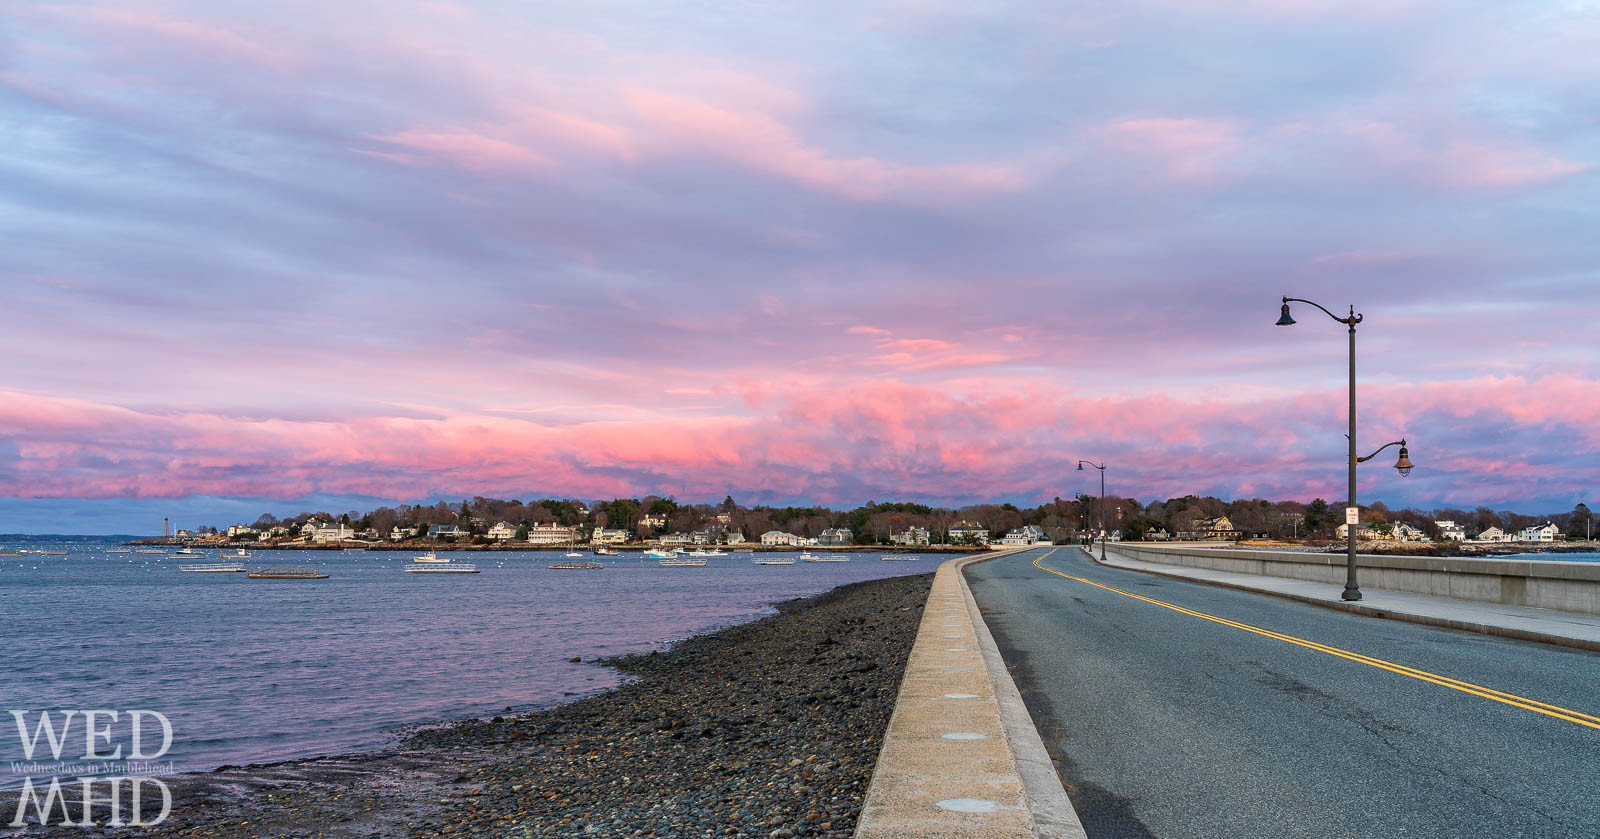 A beautiful Thanksgiving sunset lights up the sky above Marblehead Neck as seen from the edge of the causeway